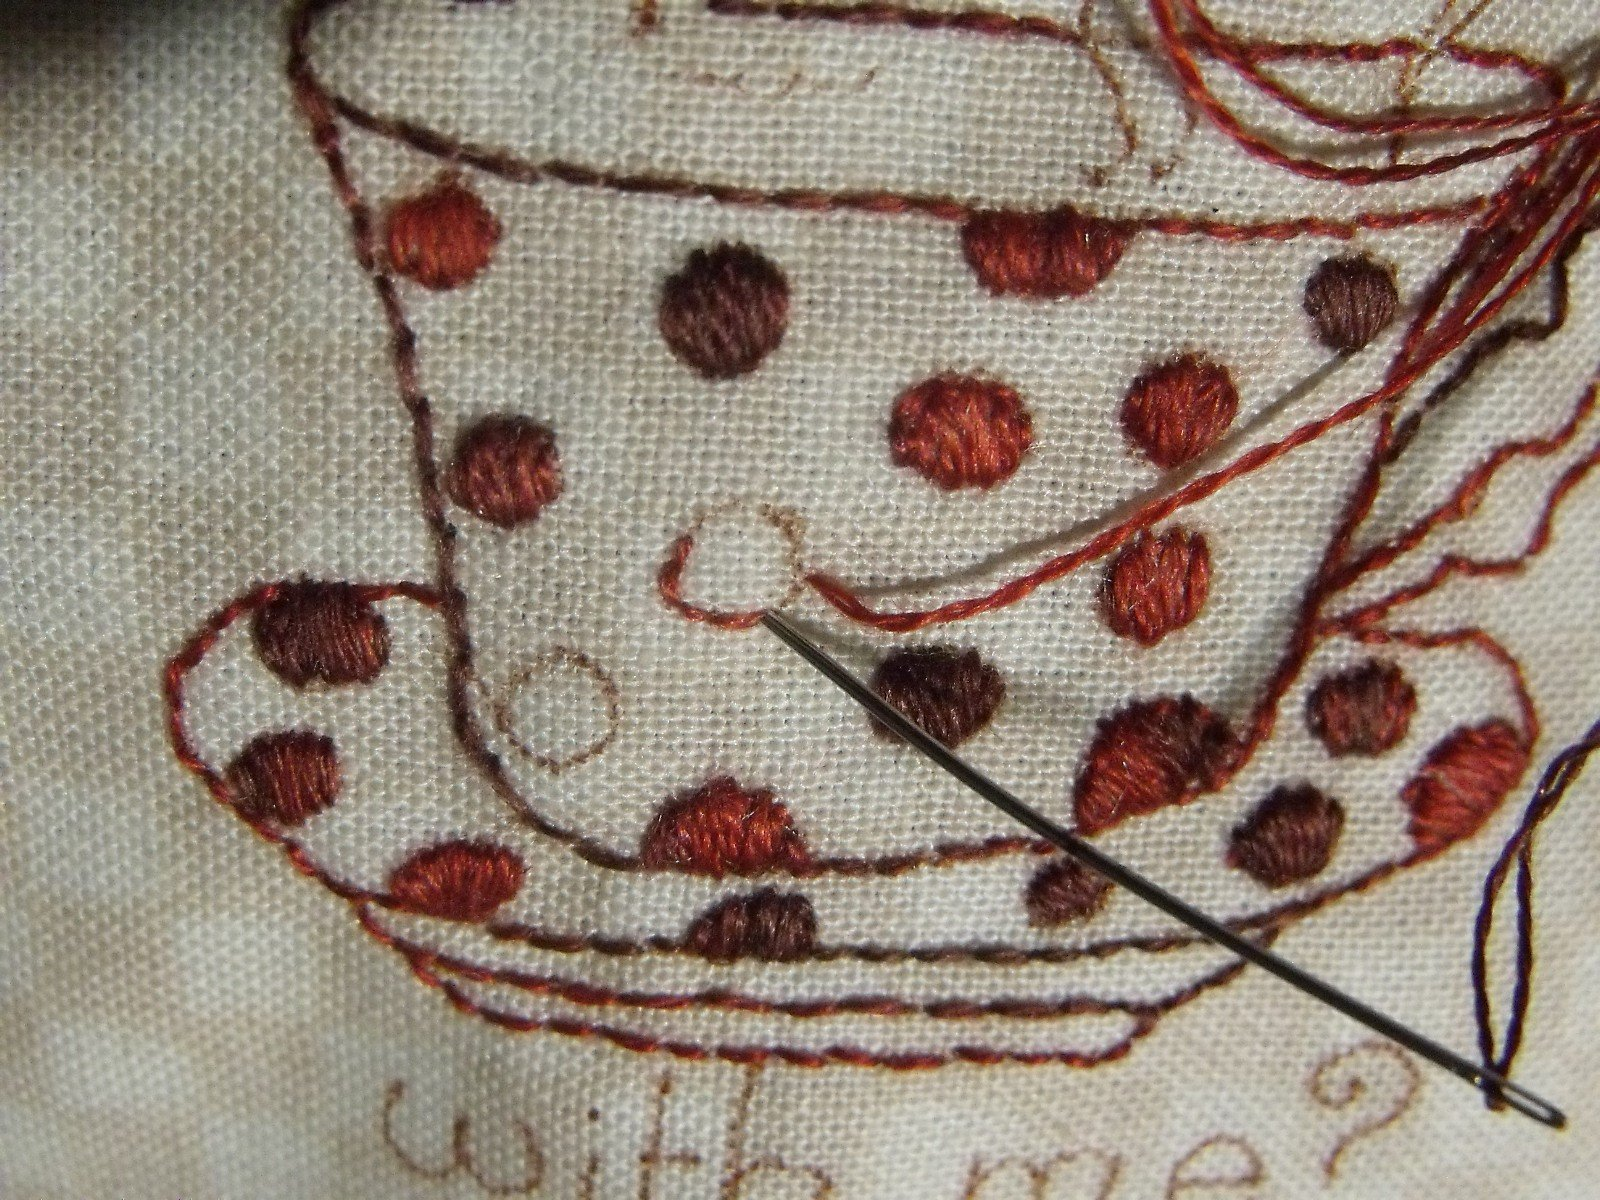 Embroidery How To: Satin Stitch 101